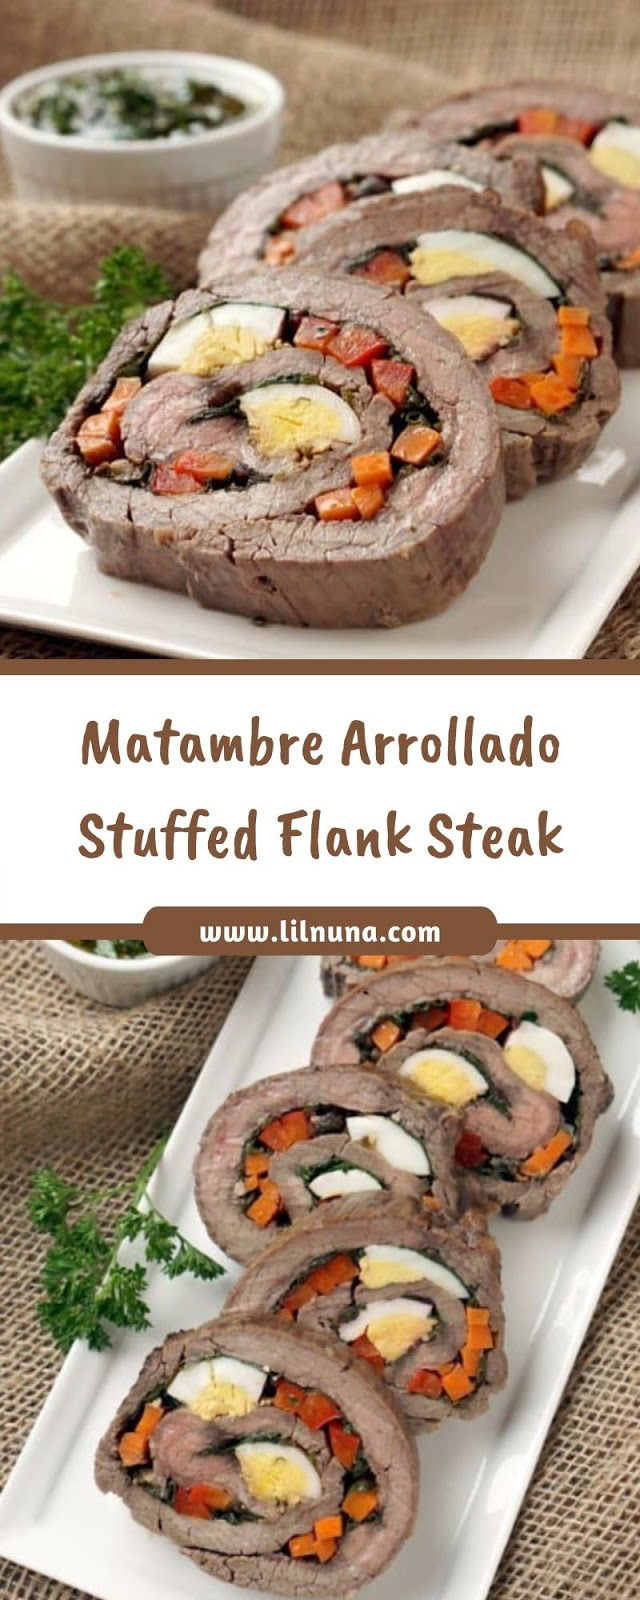 Matambre Arrollado Stuffed Flank Steak